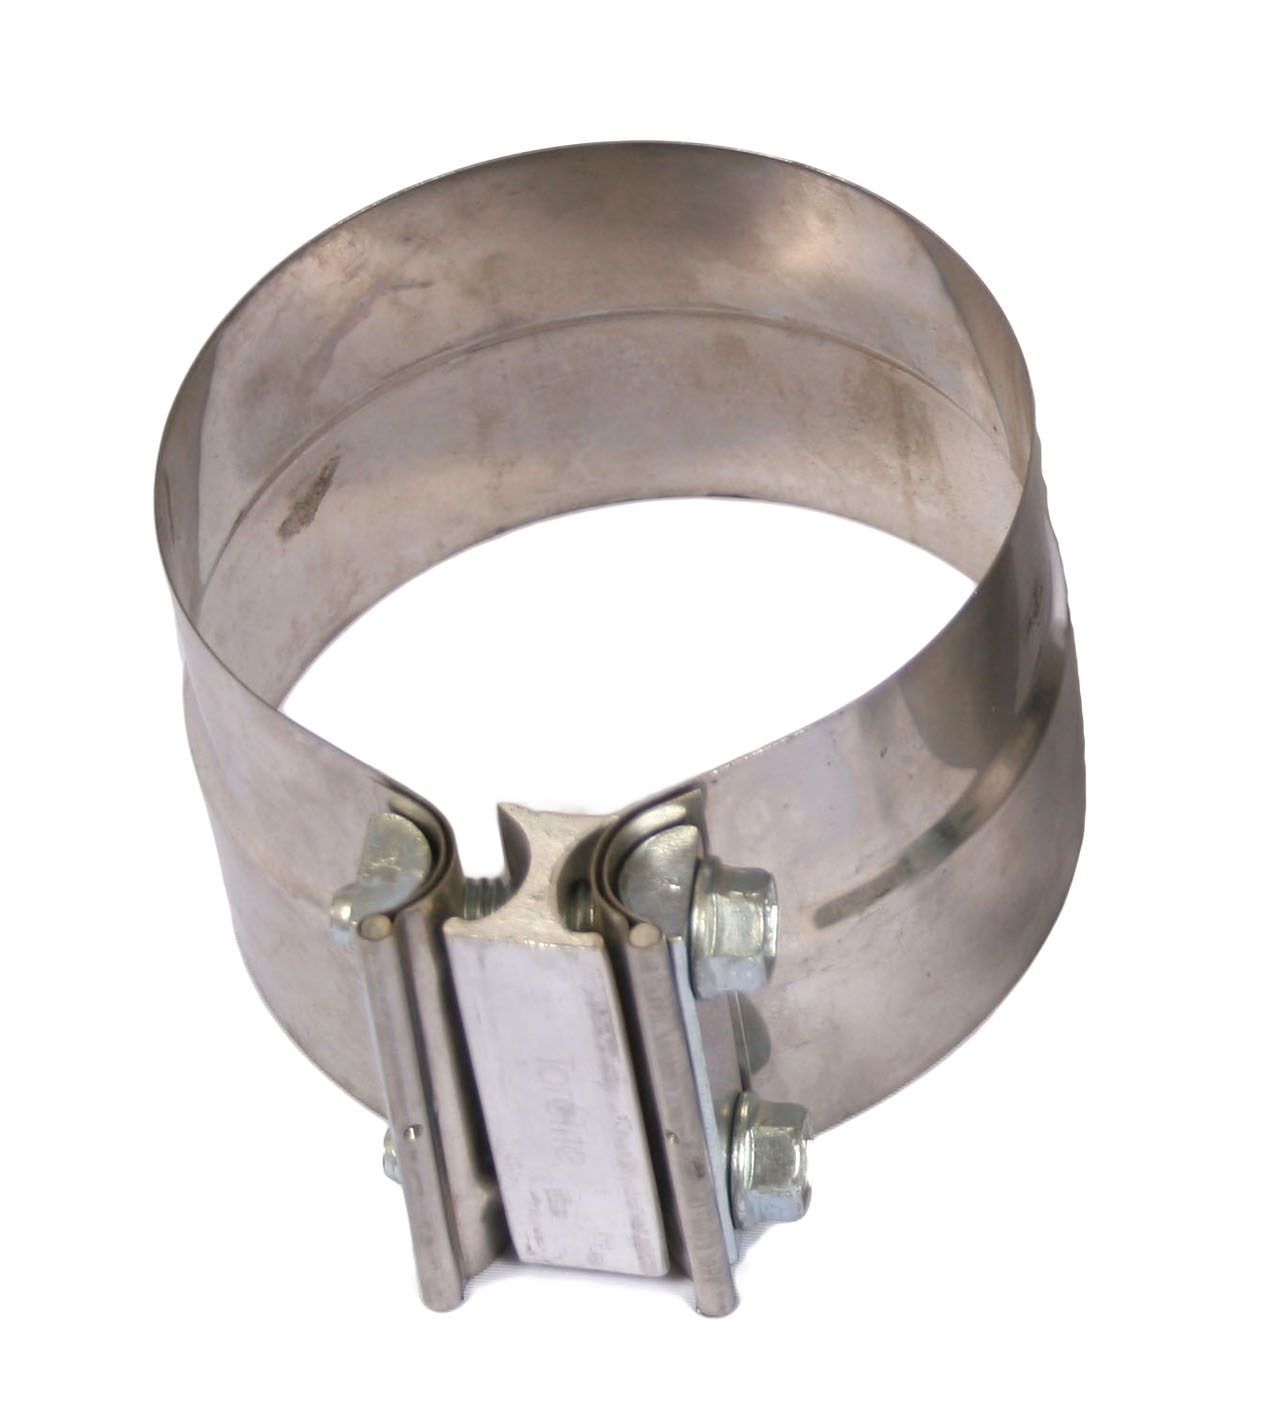 stainless-band-clamp1.jpg